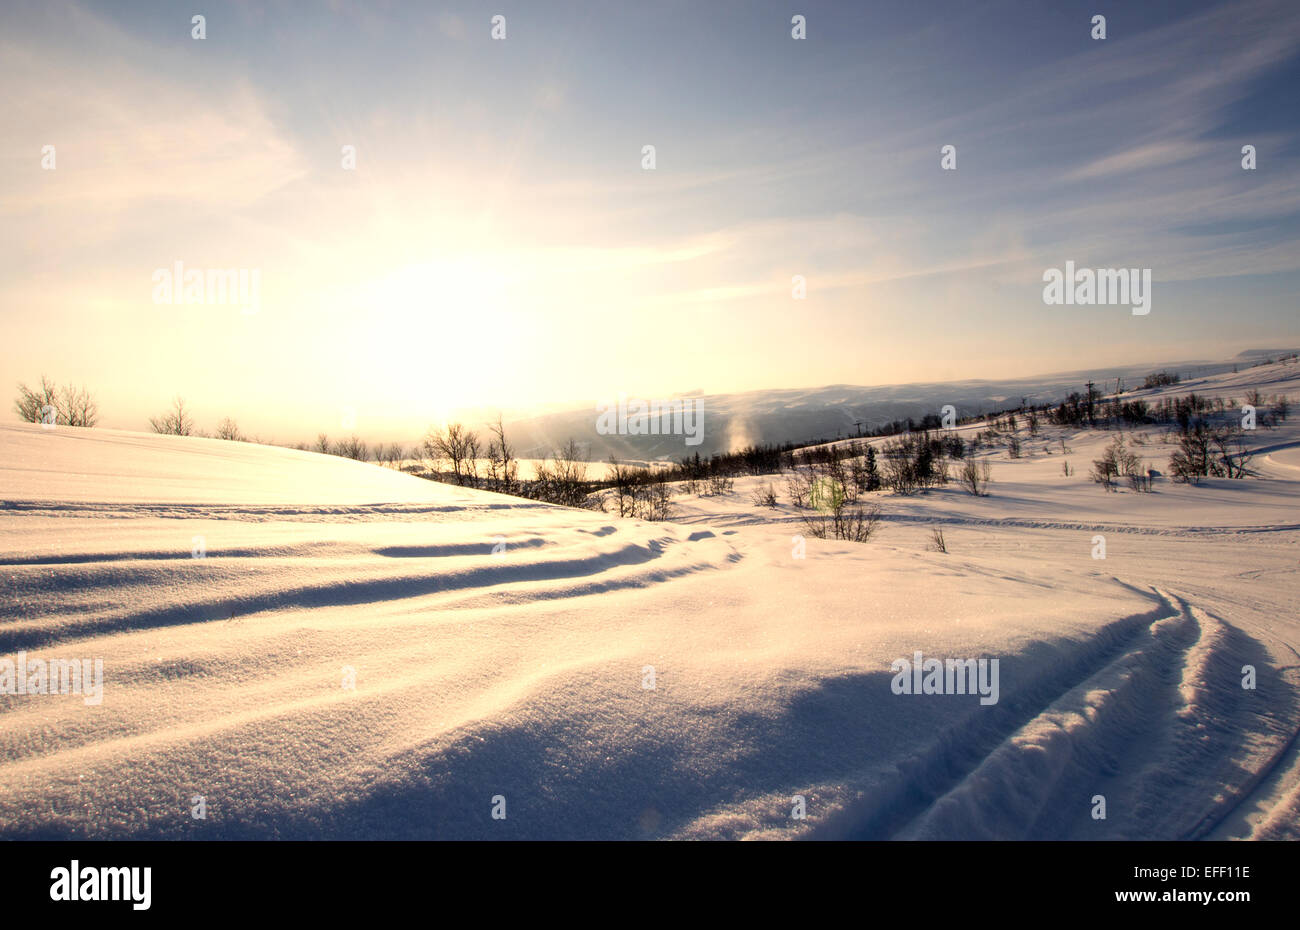 Snow Covered Mountain Tracks. - Stock Image